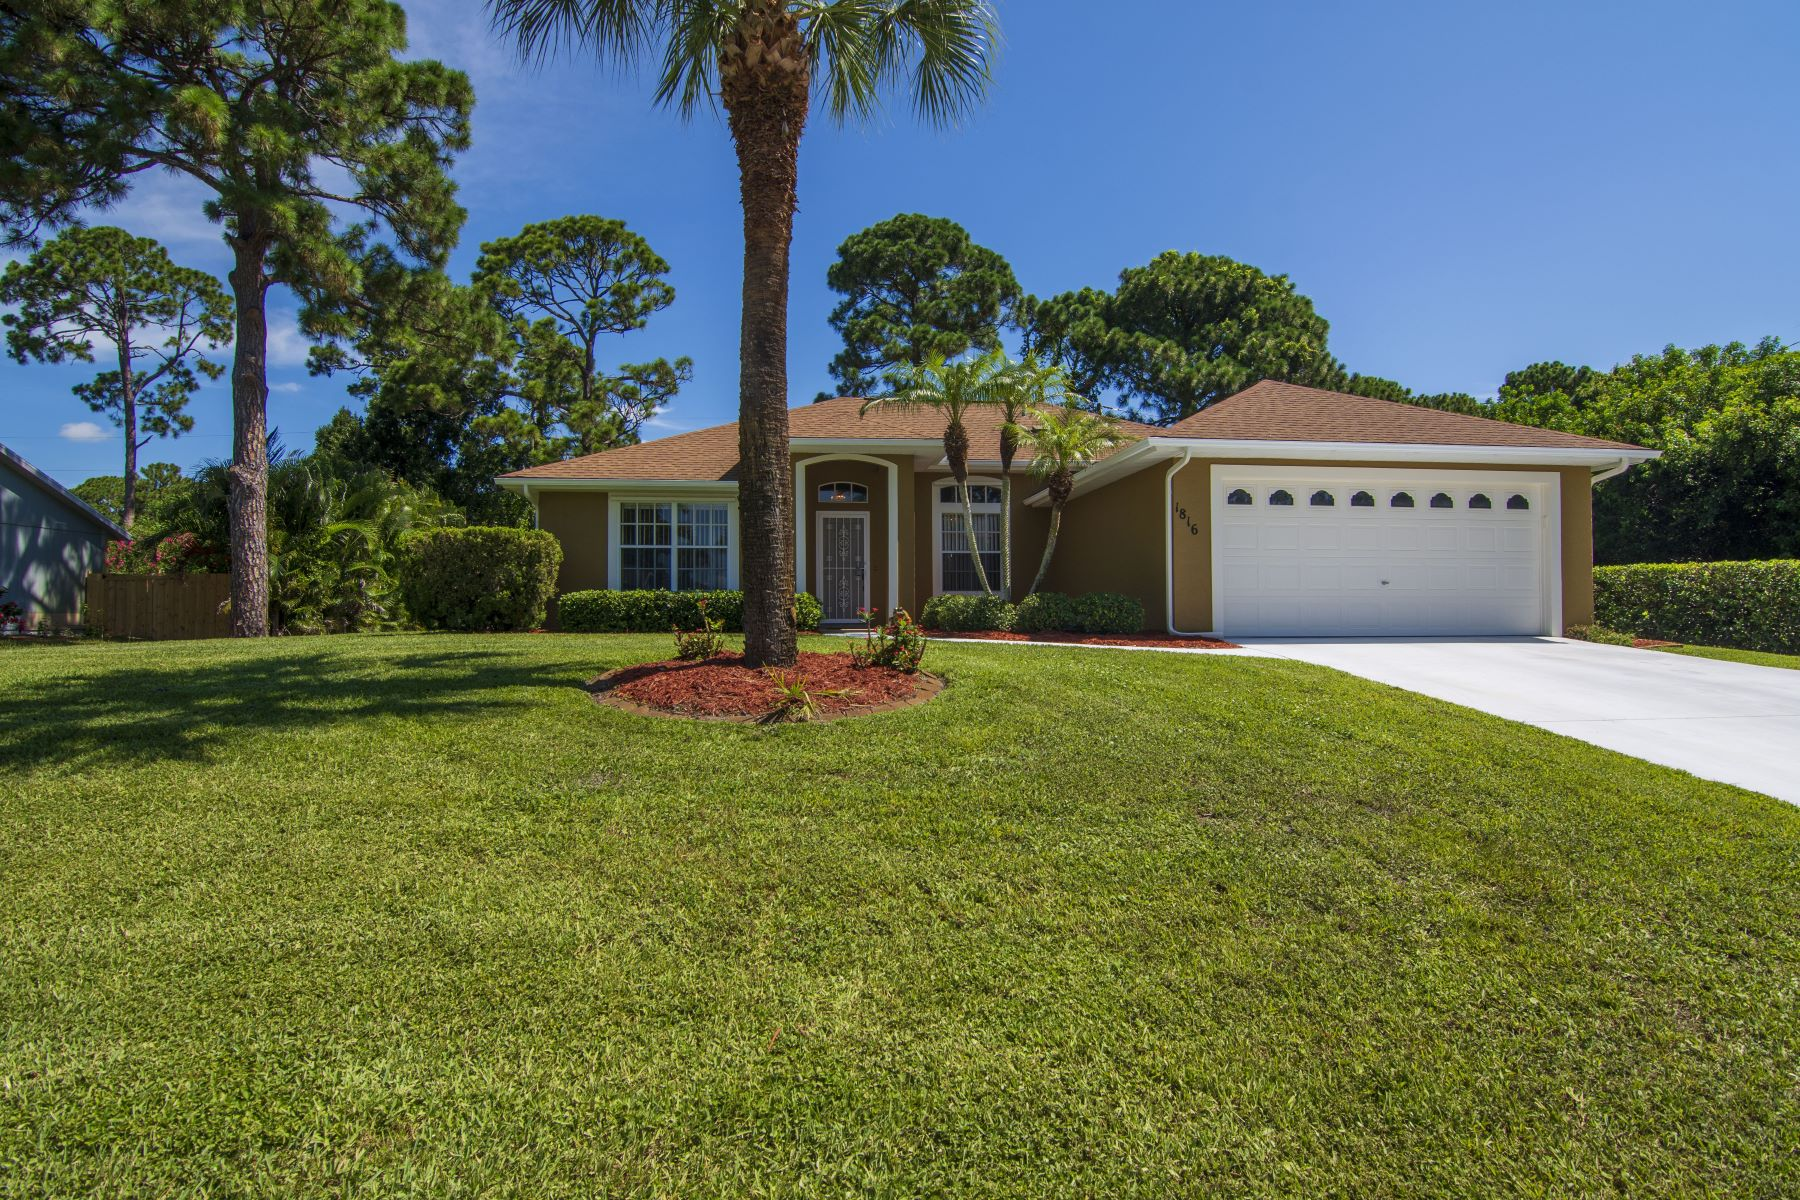 Single Family Homes for Sale at 1816 17th Place Sw, Vero Beach, FL 1816 17th Place Sw Vero Beach, Florida 32962 United States